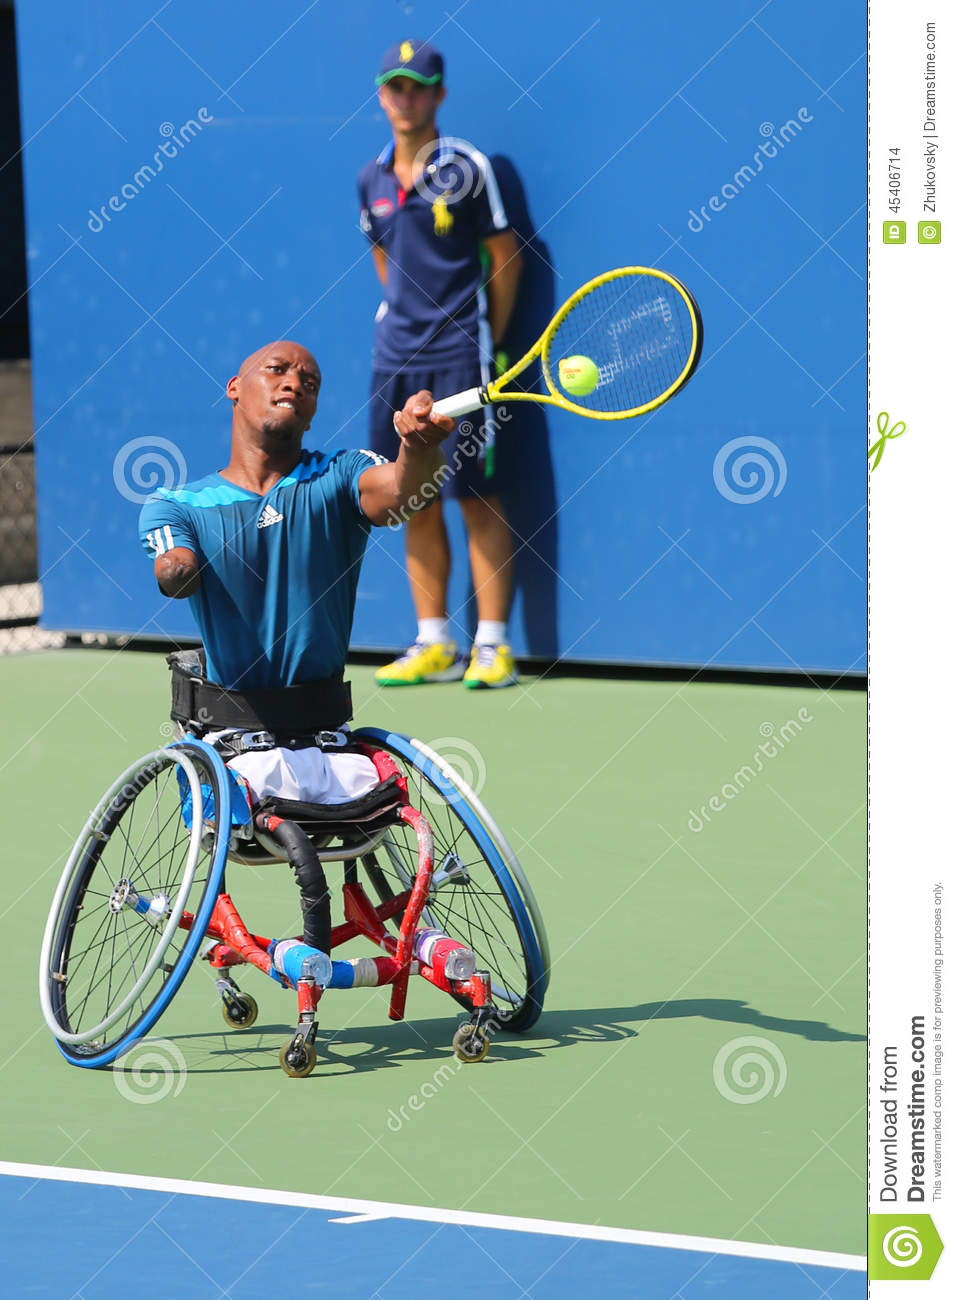 wheelchair quad dining chair pads tennis player lucas sithole from south africa during us open 2014 new york september 6 singles match at billie jean king national